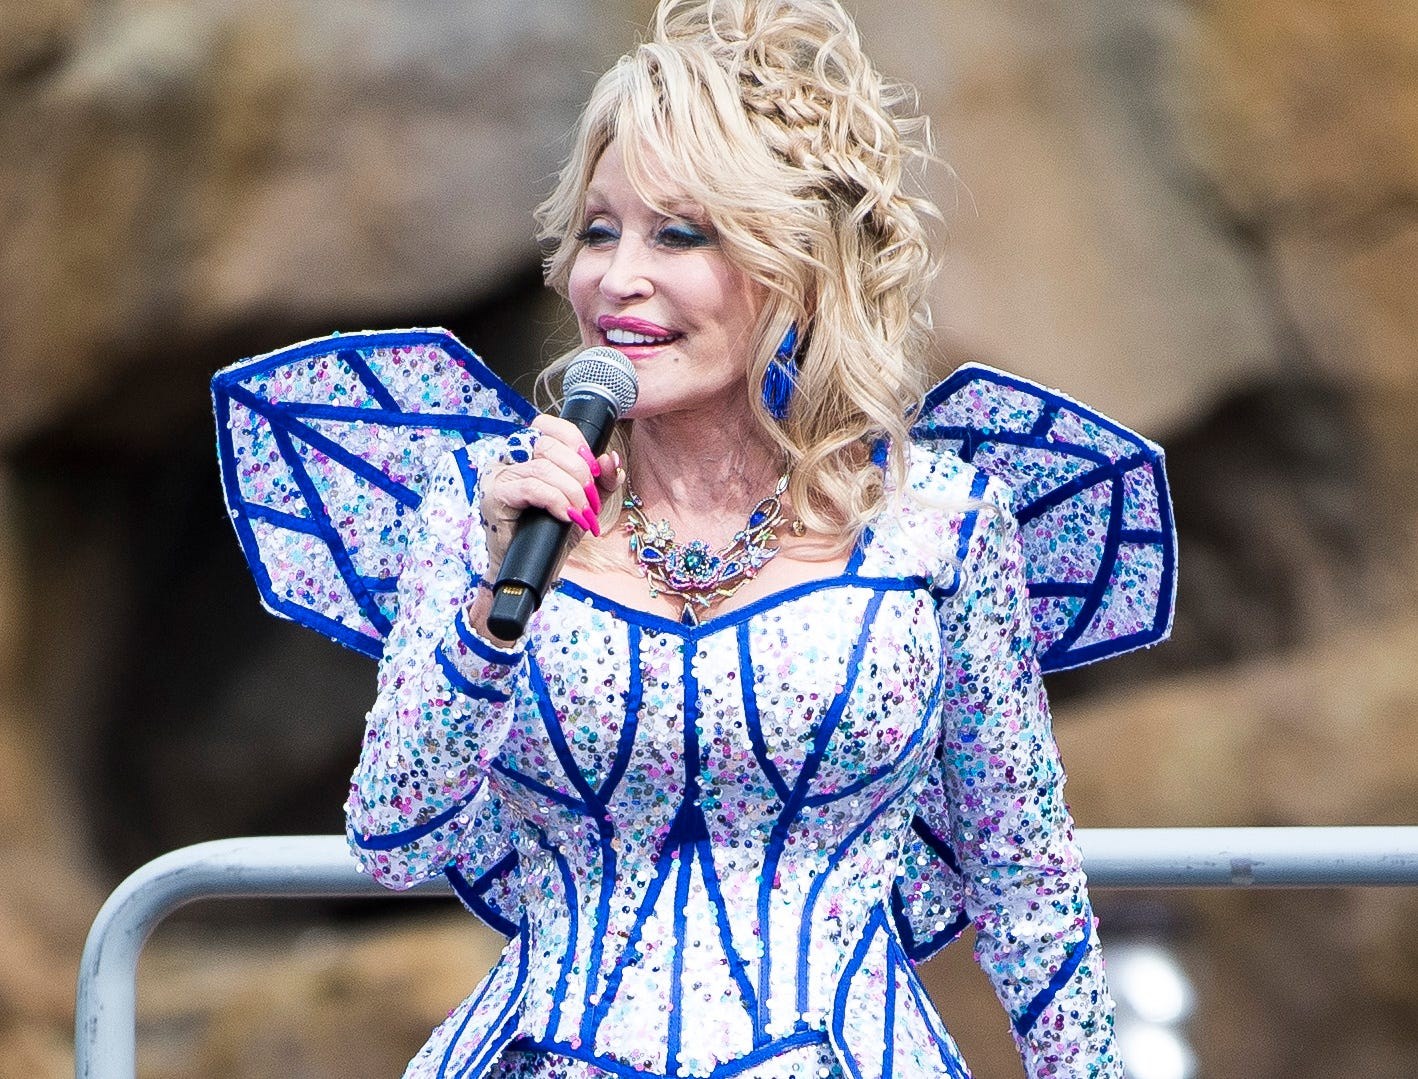 Dolly Parton speaks during the grand opening of Dollywood's new Wildwood Grove expansion on Friday, May 10, 2019.